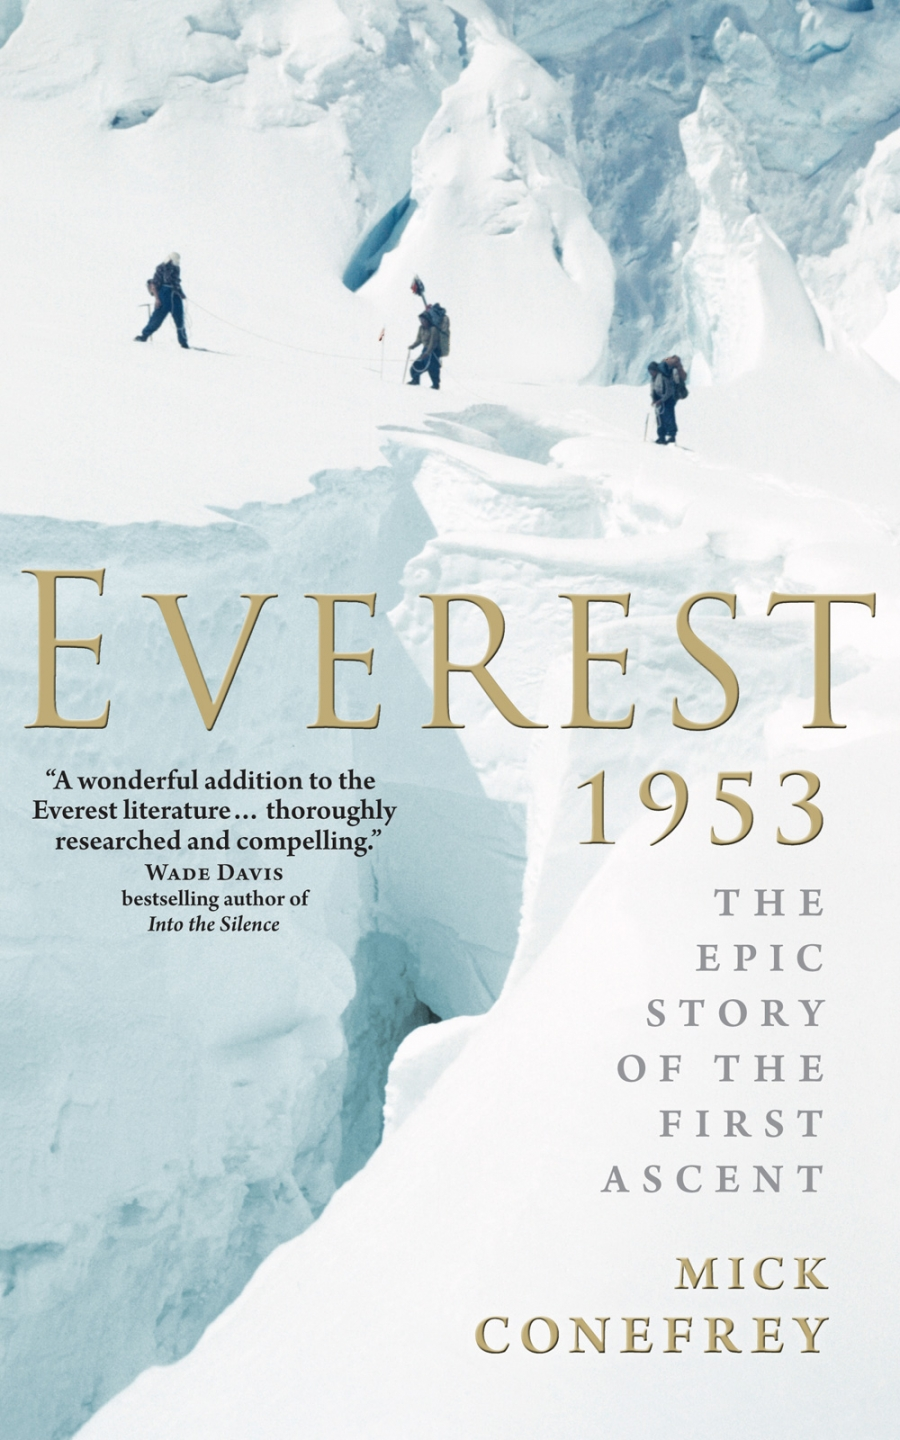 Everest 1953 by Mick Conefrey reviewed